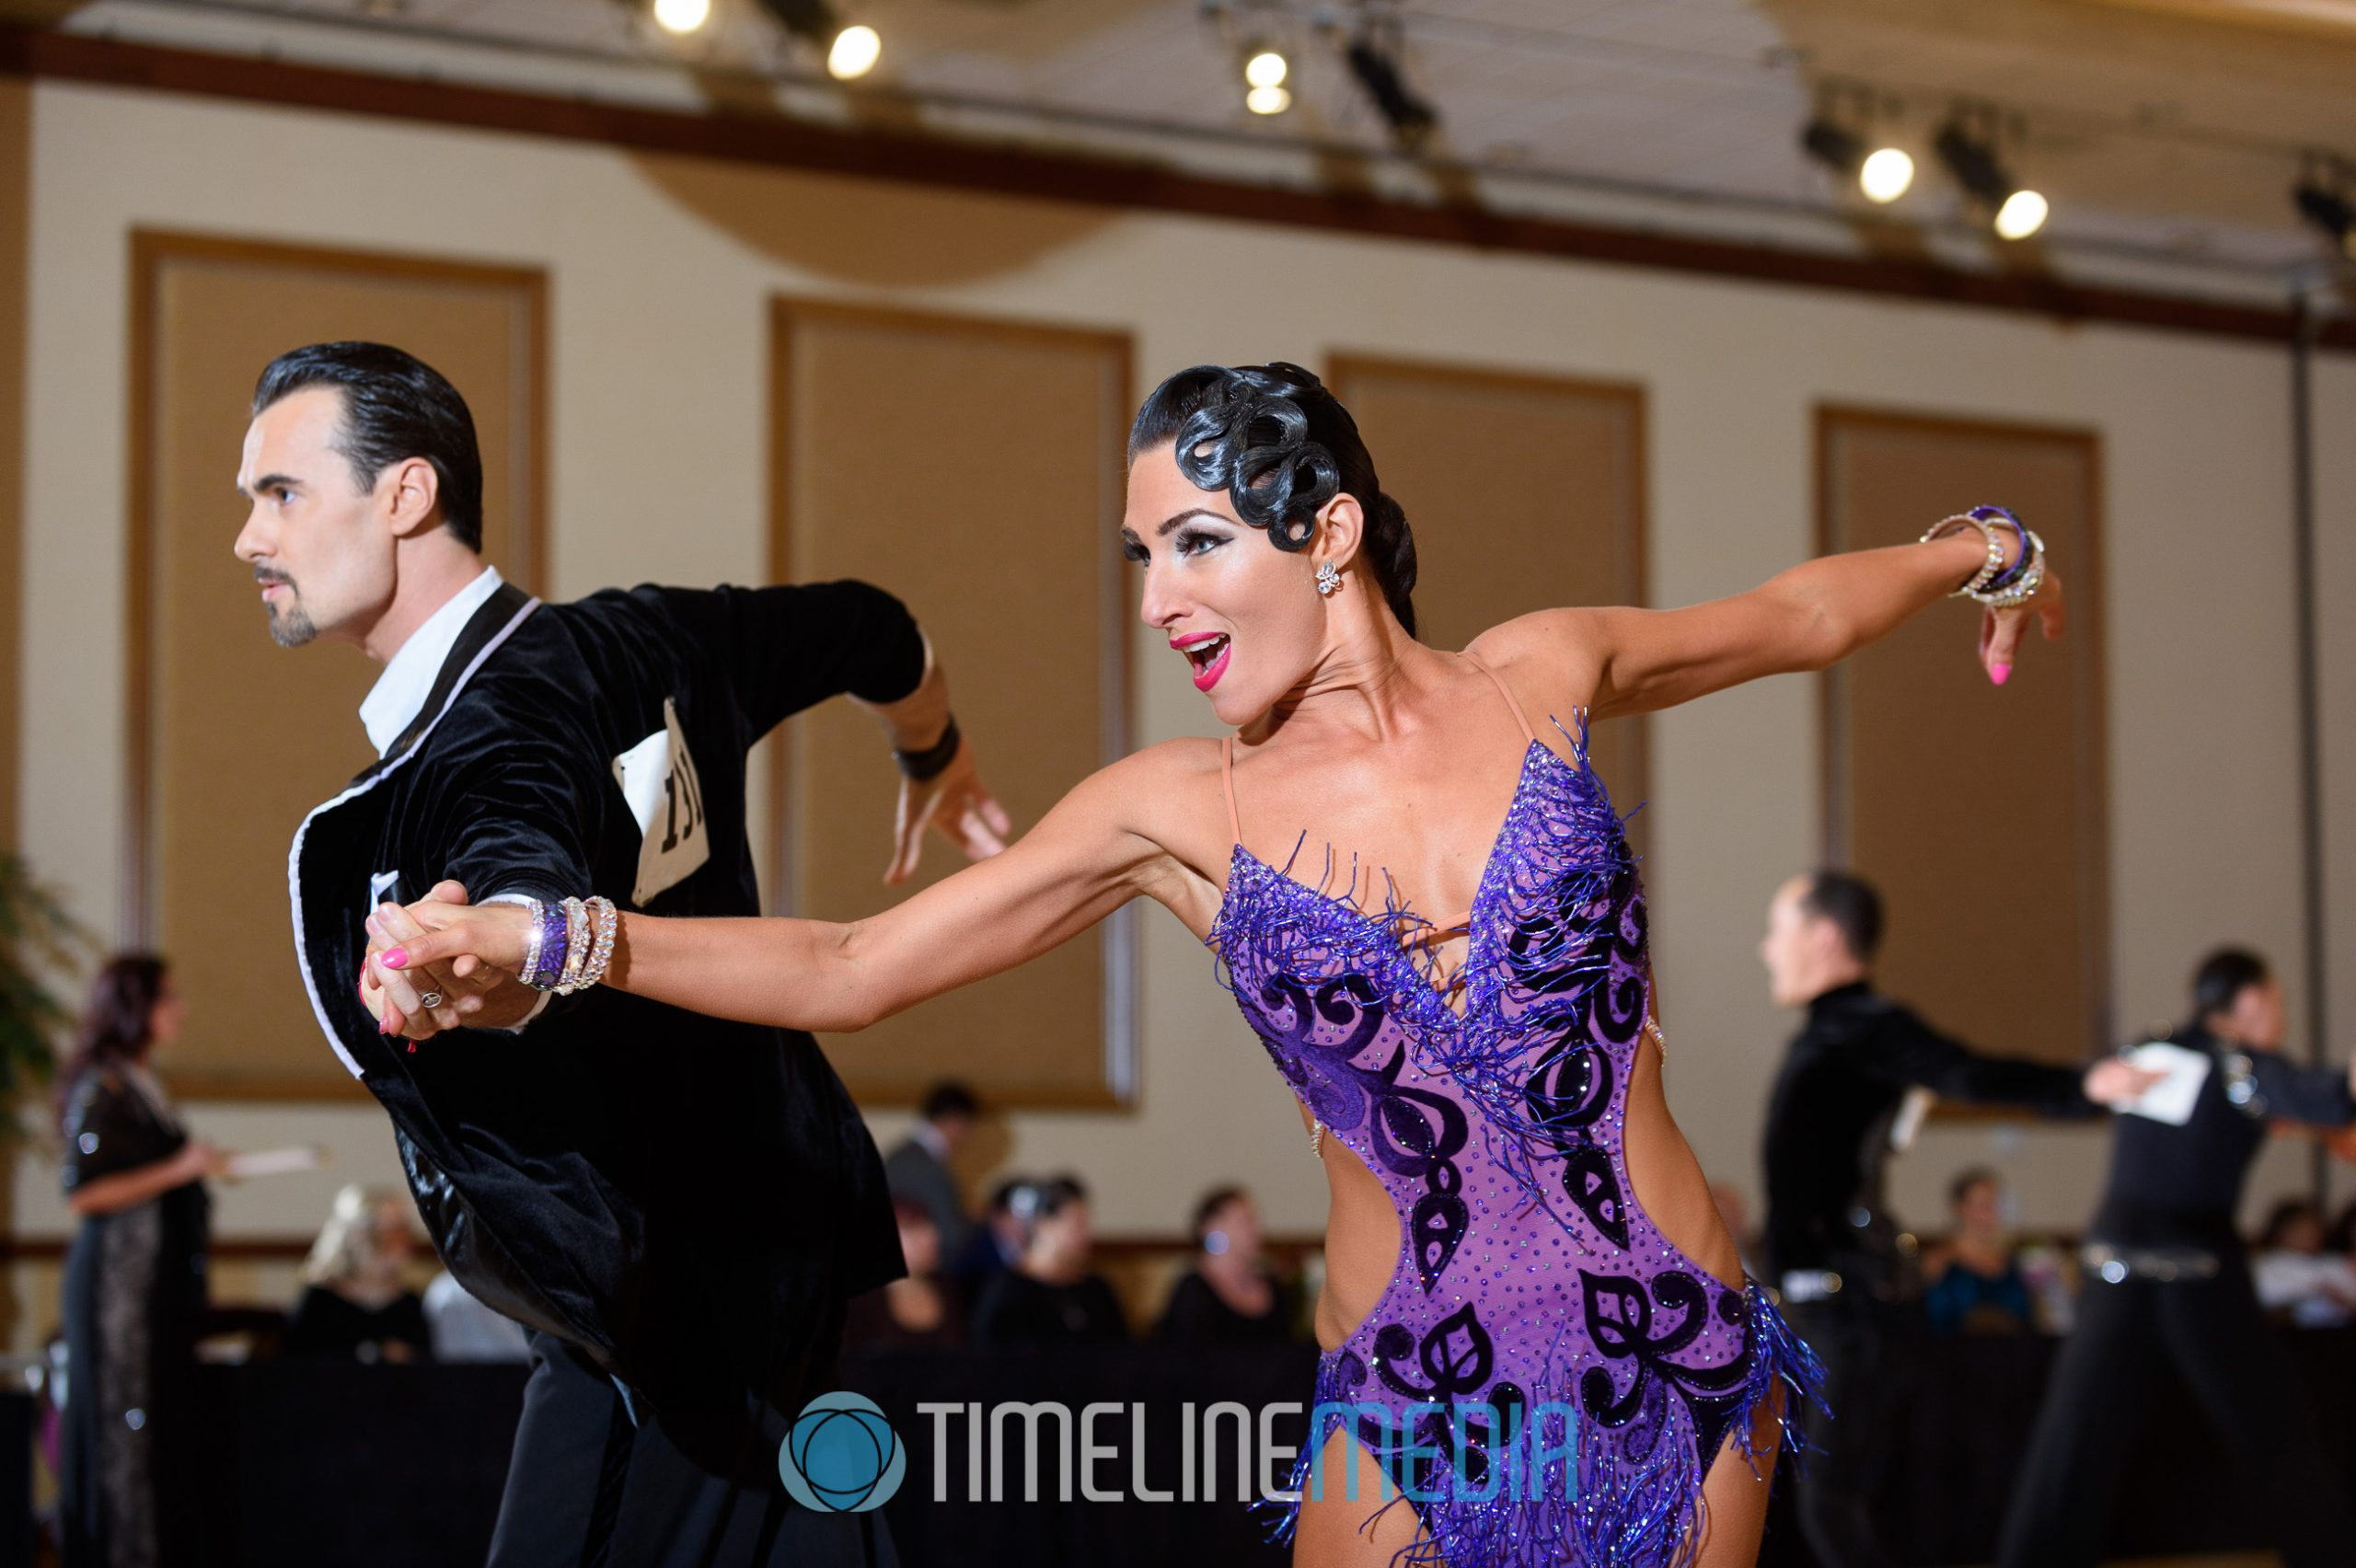 Professional Latin dancers in competition ©TimeLine Media